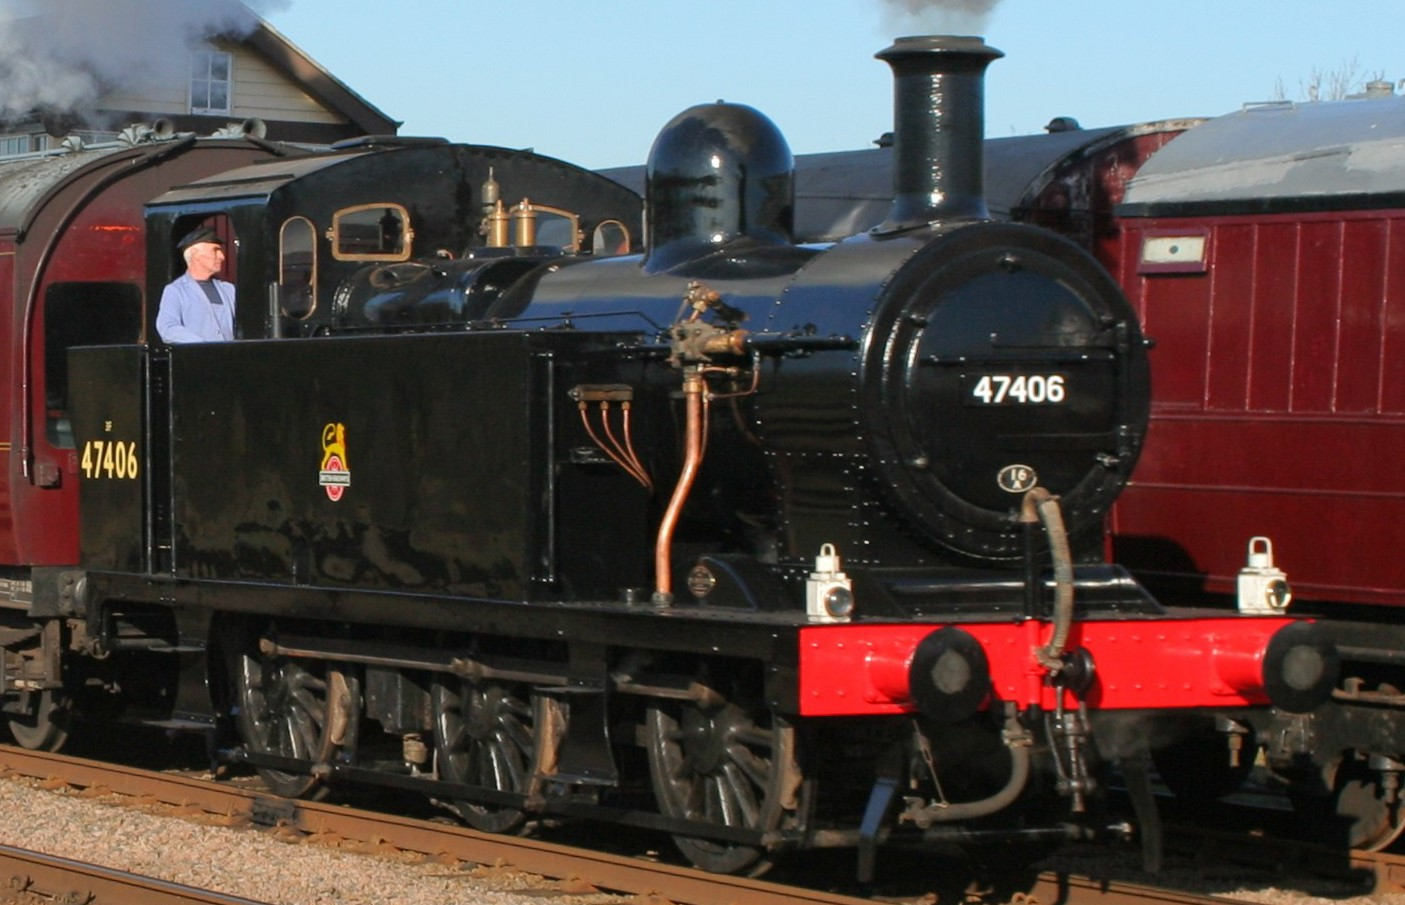 47406 at the Great Central Railway in January 2010. © Duncan Harris